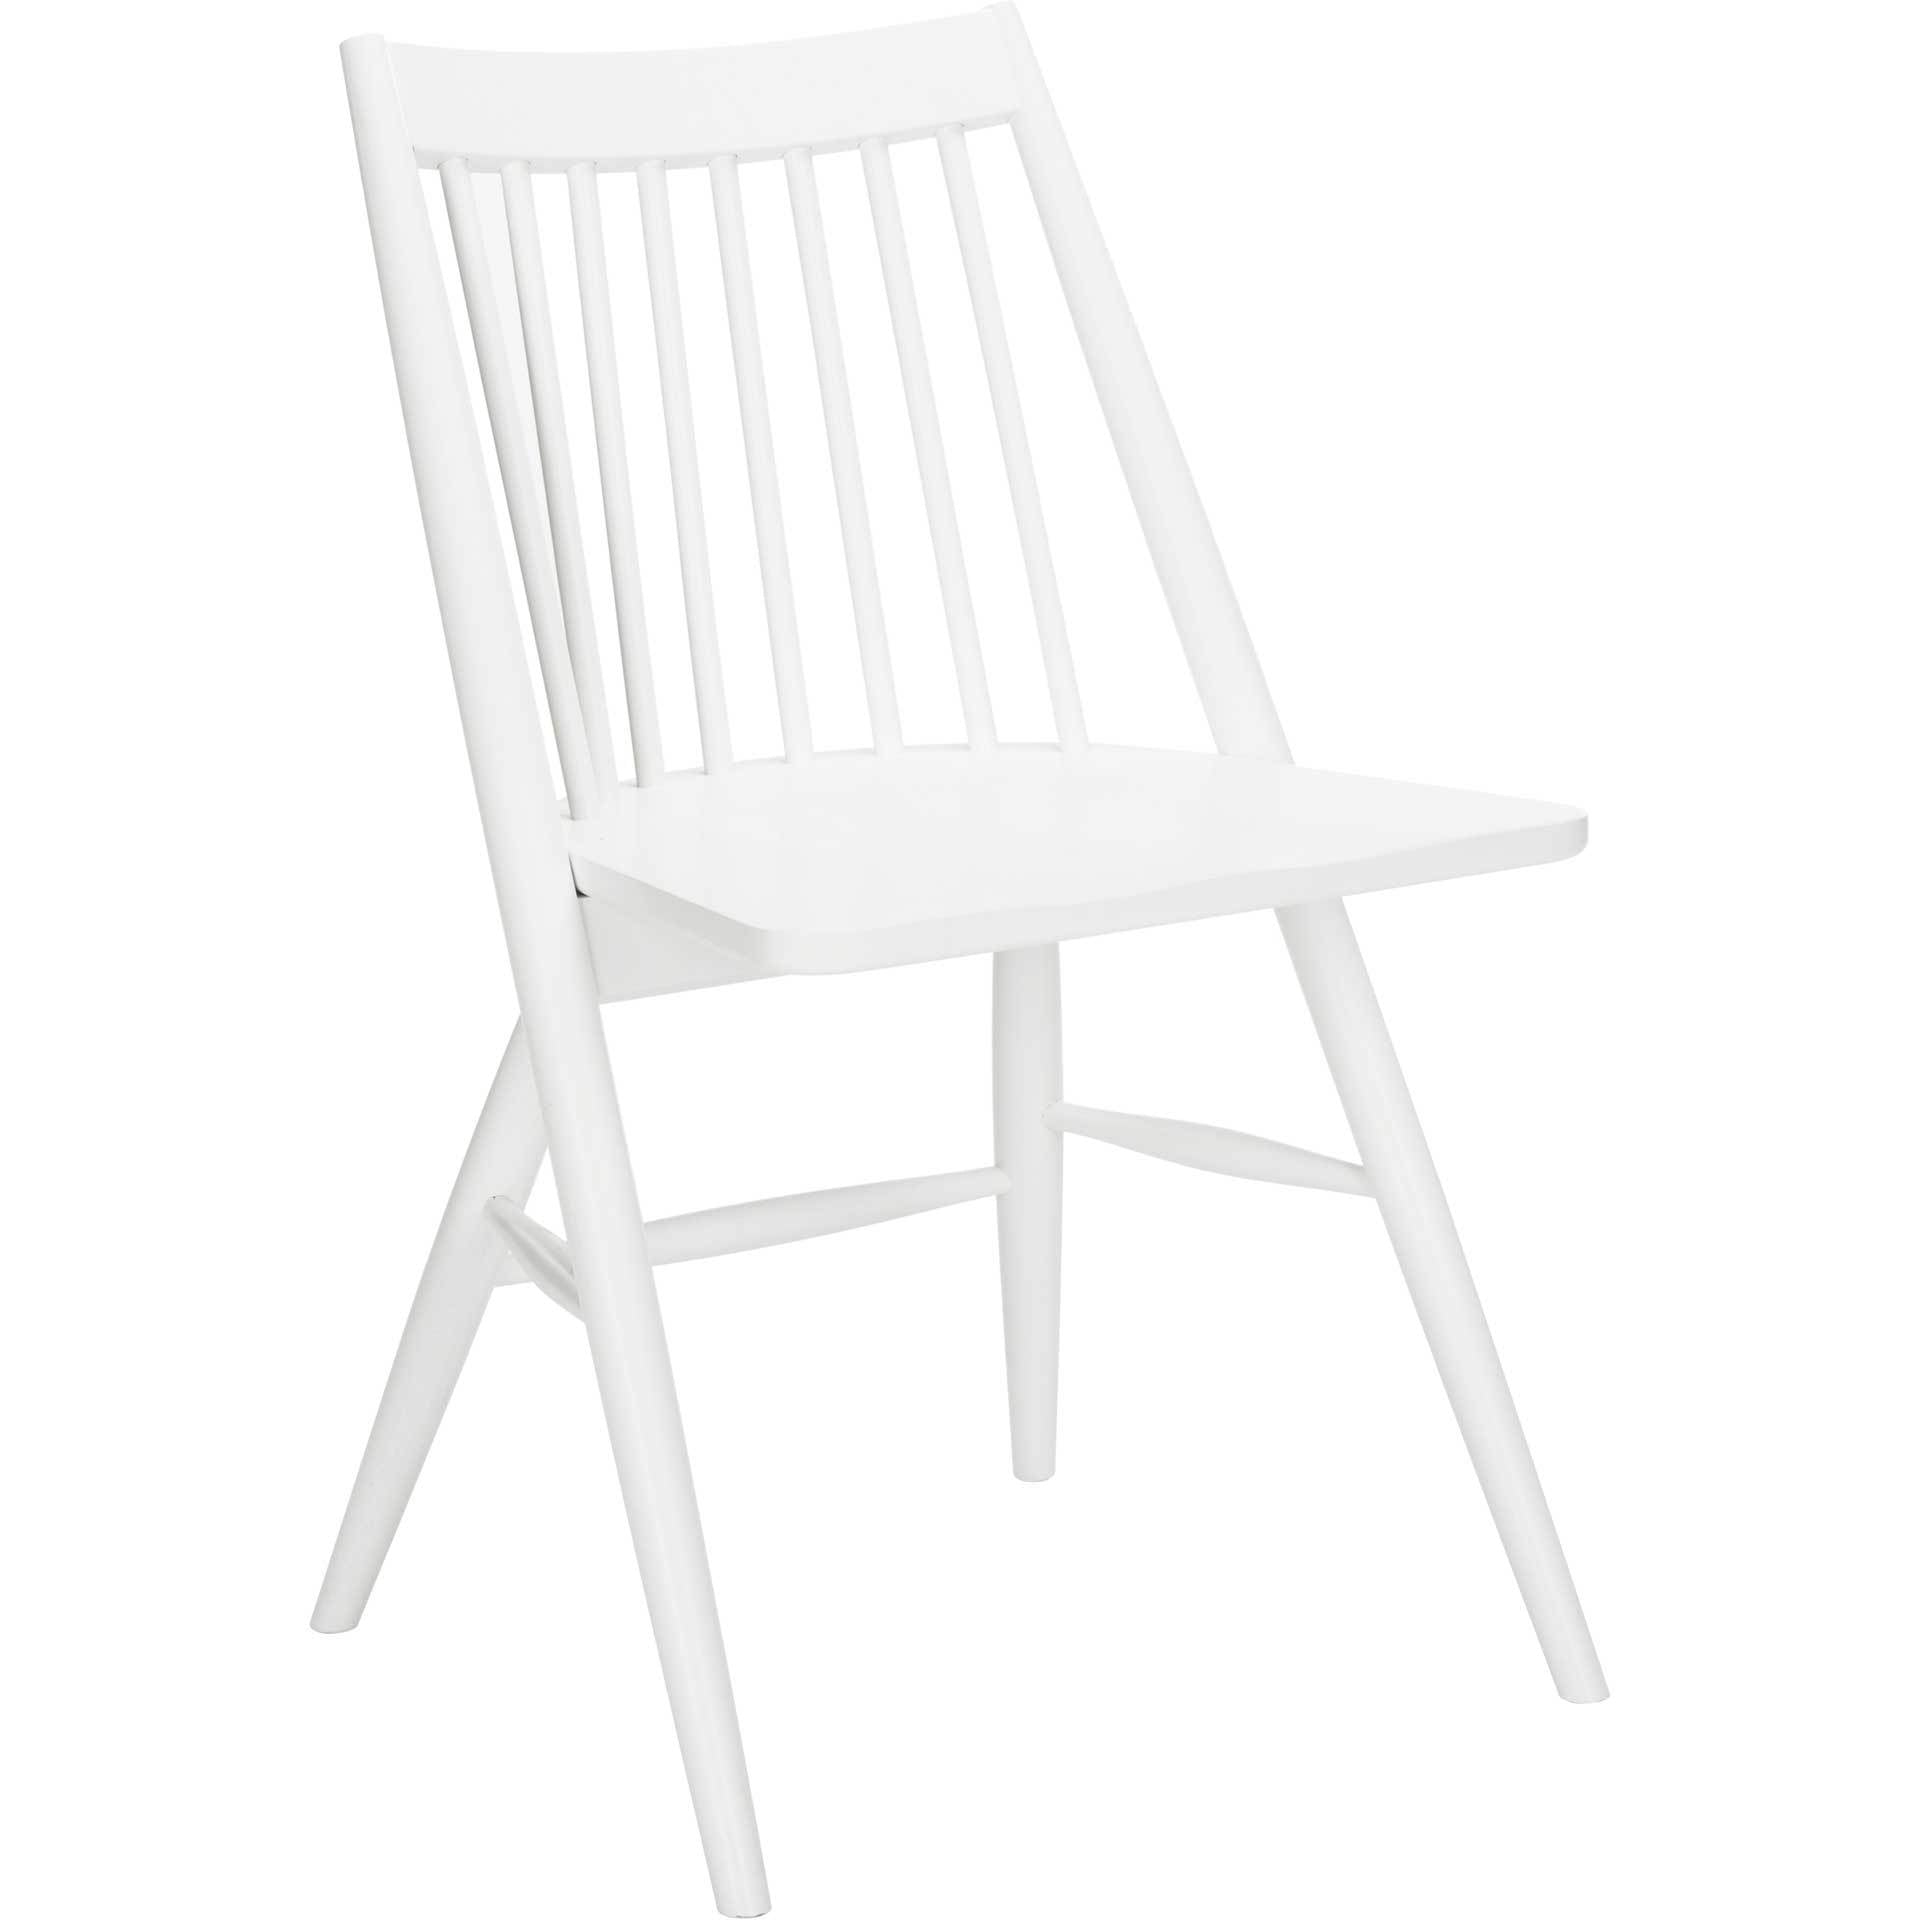 Wrangler Dining Chair White (Set of 2)